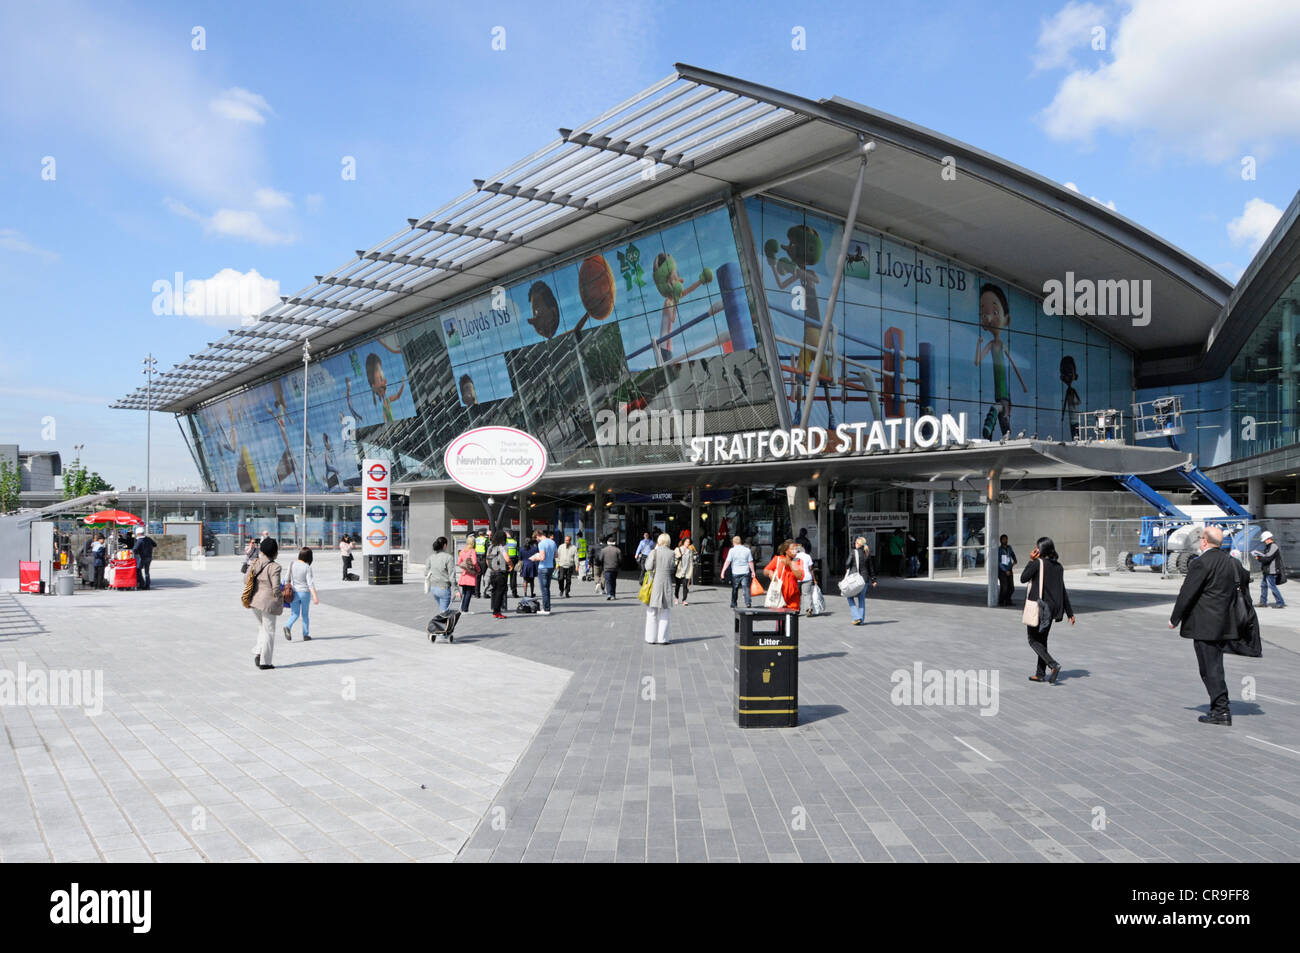 Stratford railway station & concourse with Lloyds TSB Olympic sponsors advertising panels on windows nearing - Stock Image